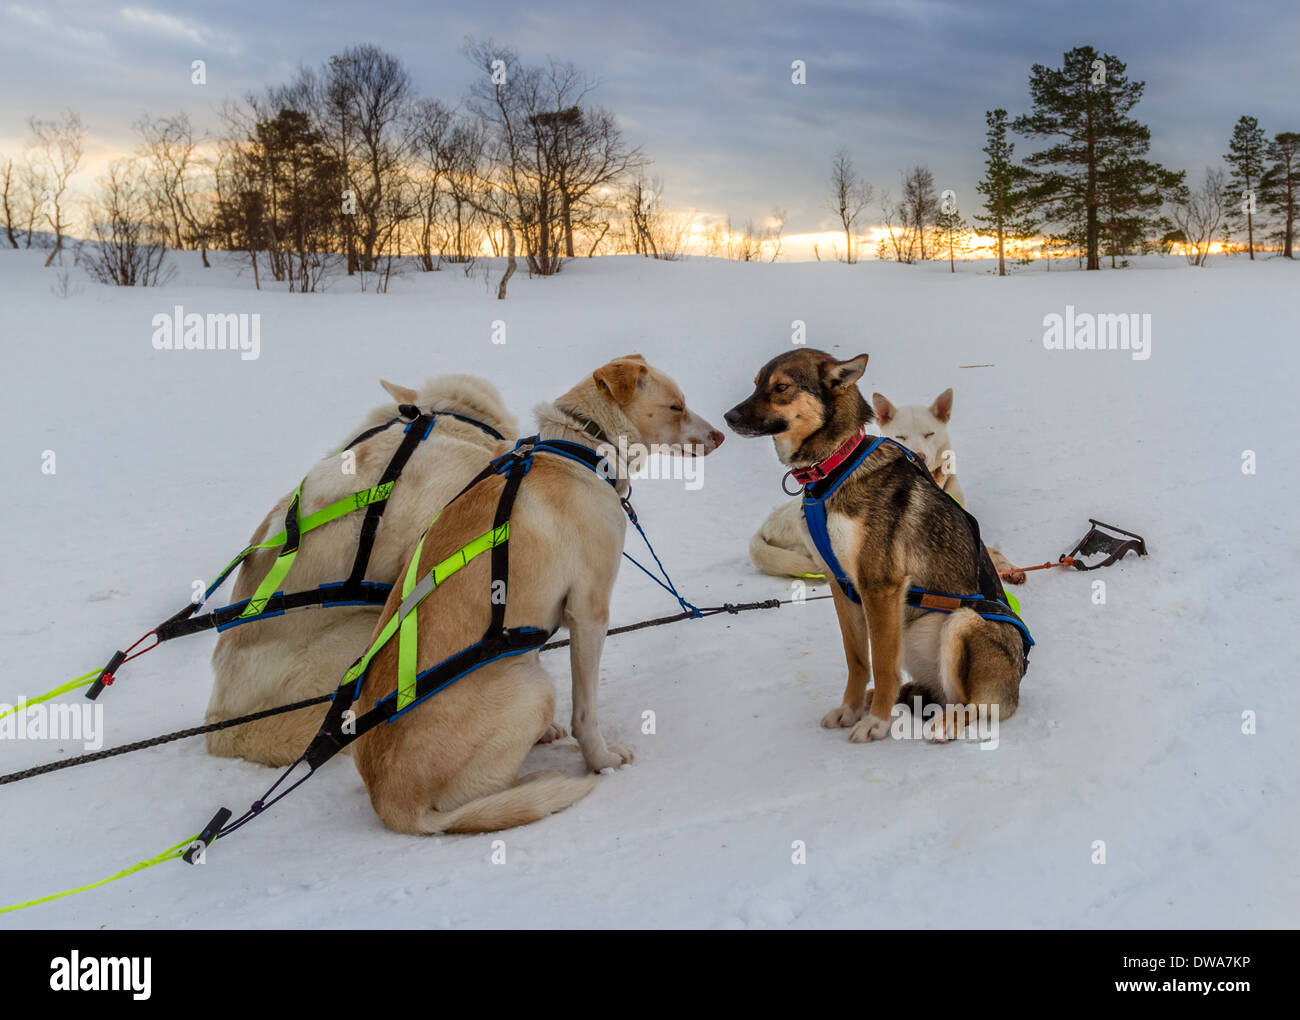 Refusal - dog sledding, Norway - Stock Image